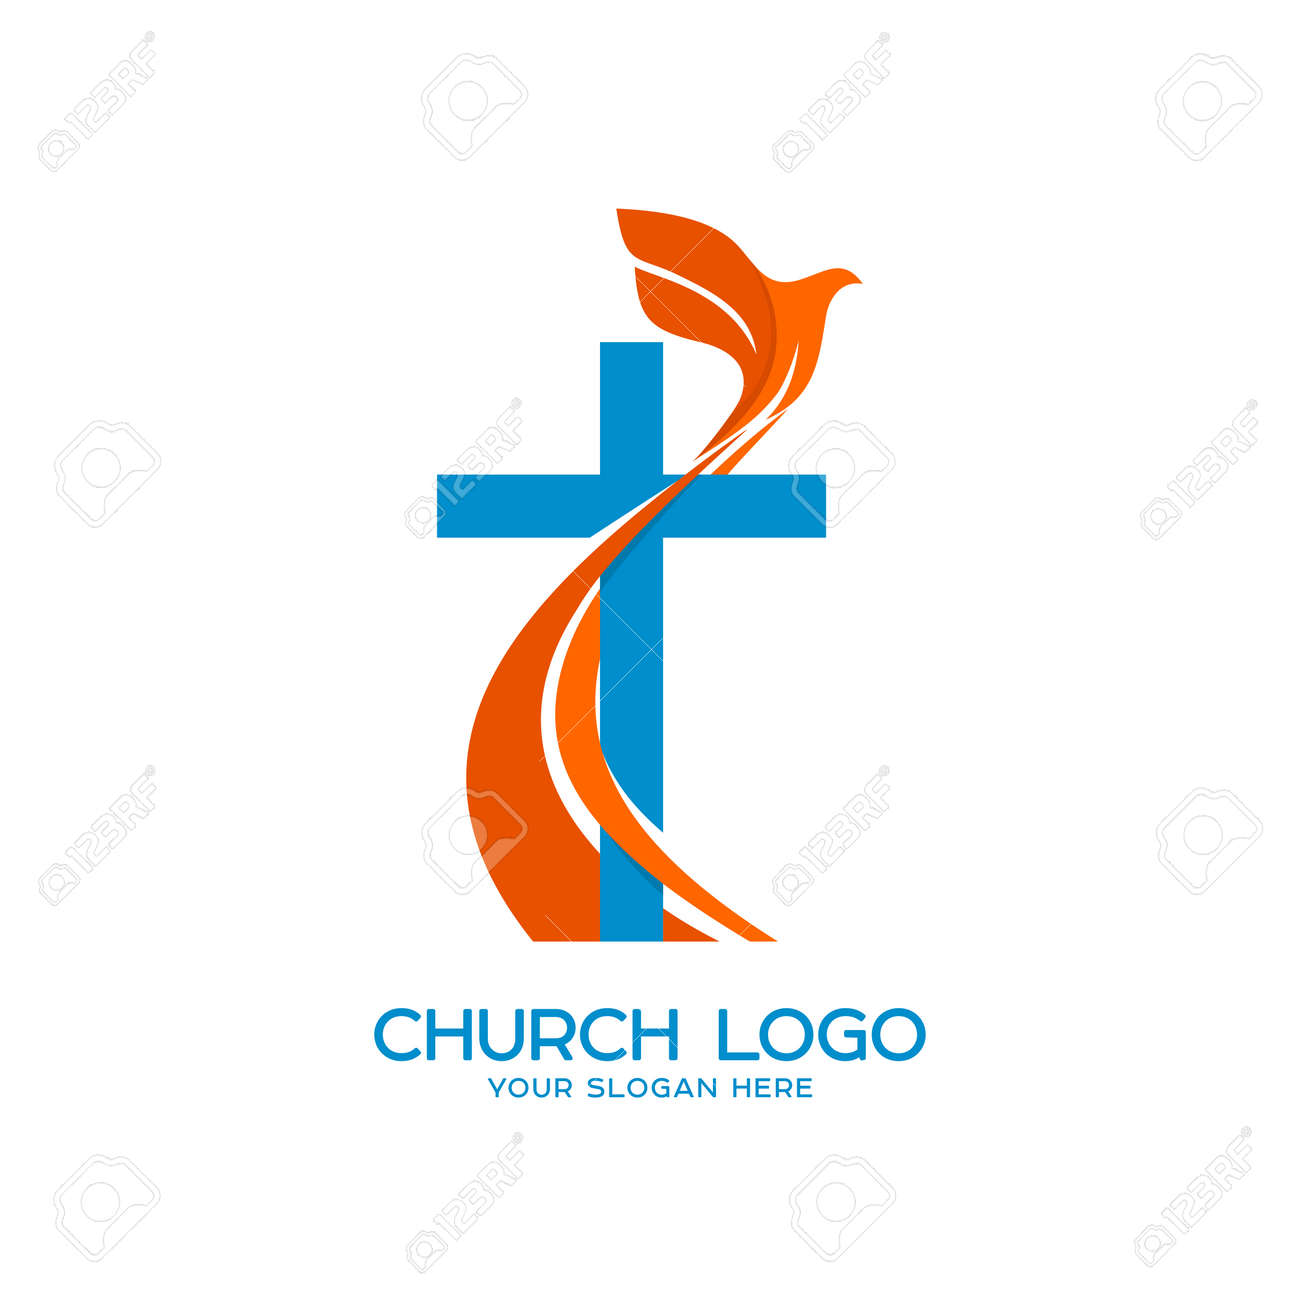 Church logo christian symbols cross and a flying dove a symbol church logo christian symbols cross and a flying dove a symbol of the altavistaventures Images